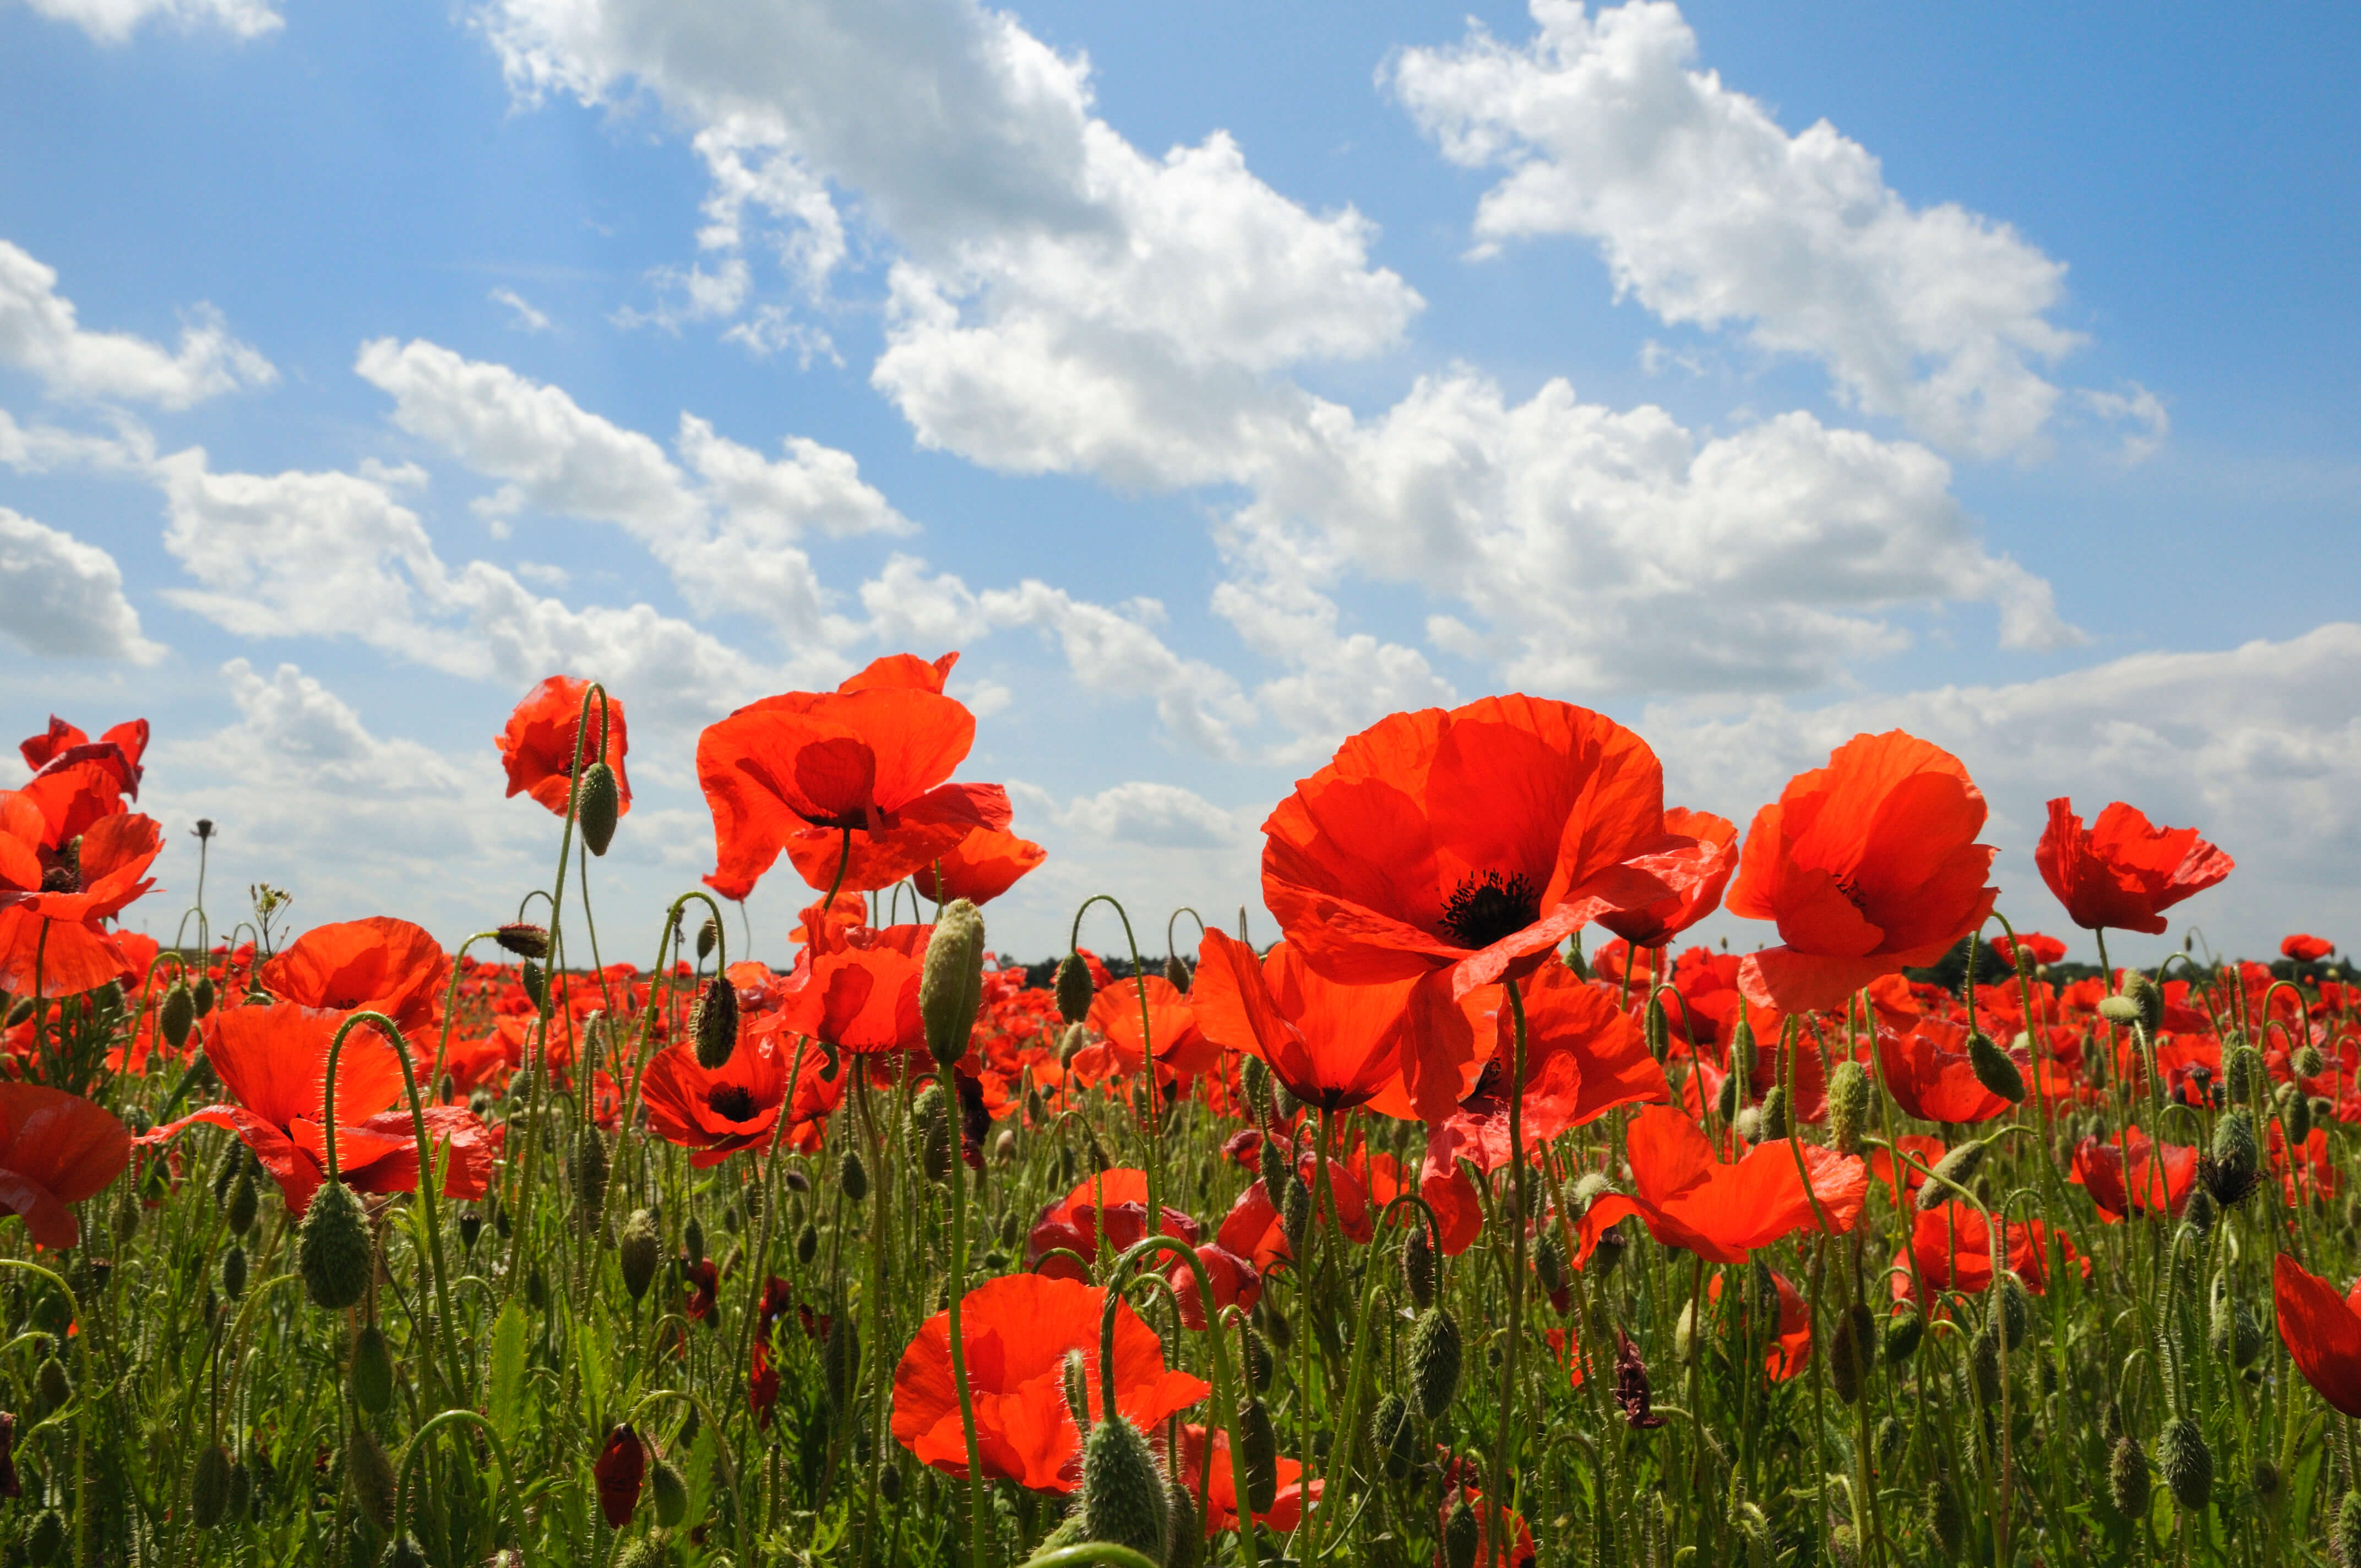 Symbolism of flowers in poetry literature of the great war jordan even made a separate blog post earlier in the semester about the art installation of poppies which i conveniently linked here mightylinksfo